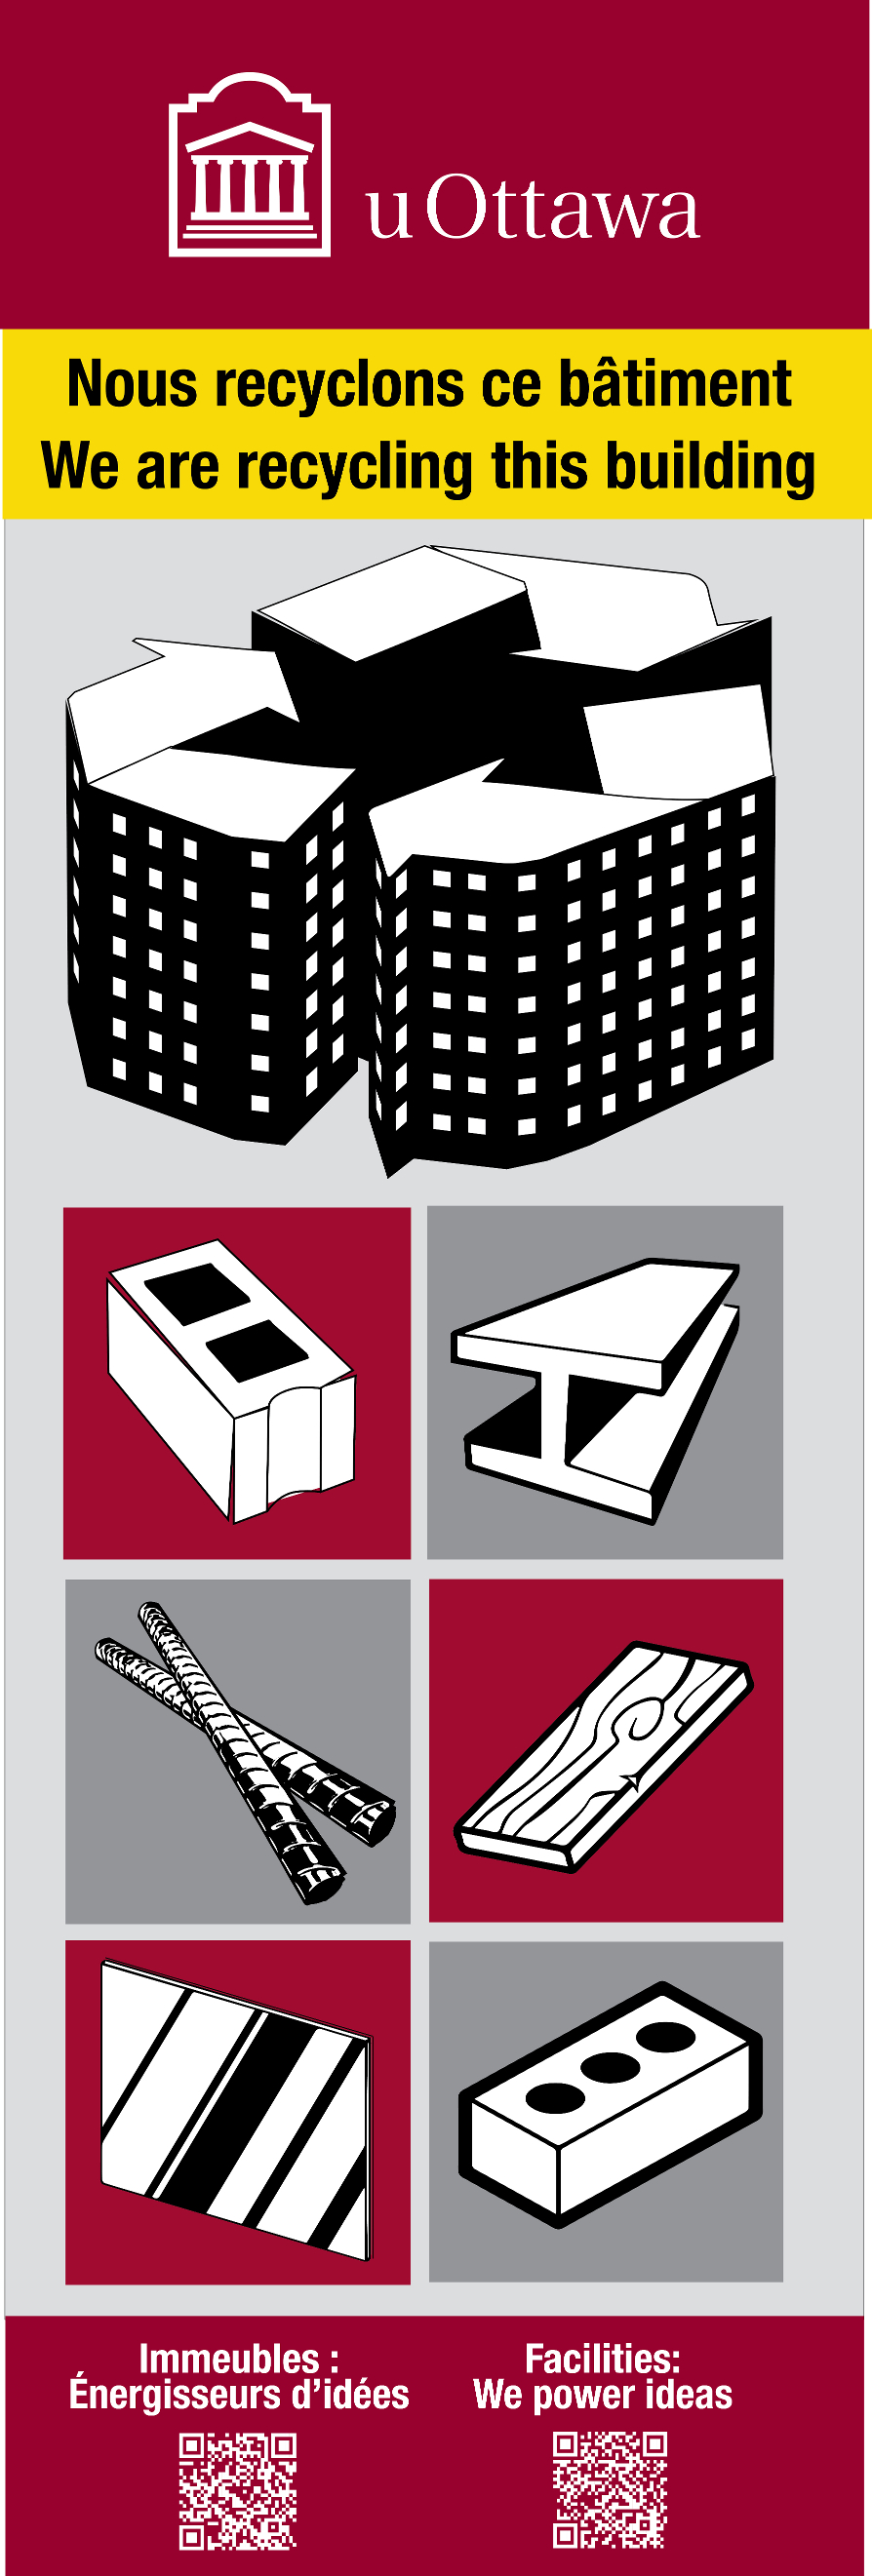 Sign used outside buildings being demolished which illustrates the materials that can be recycled